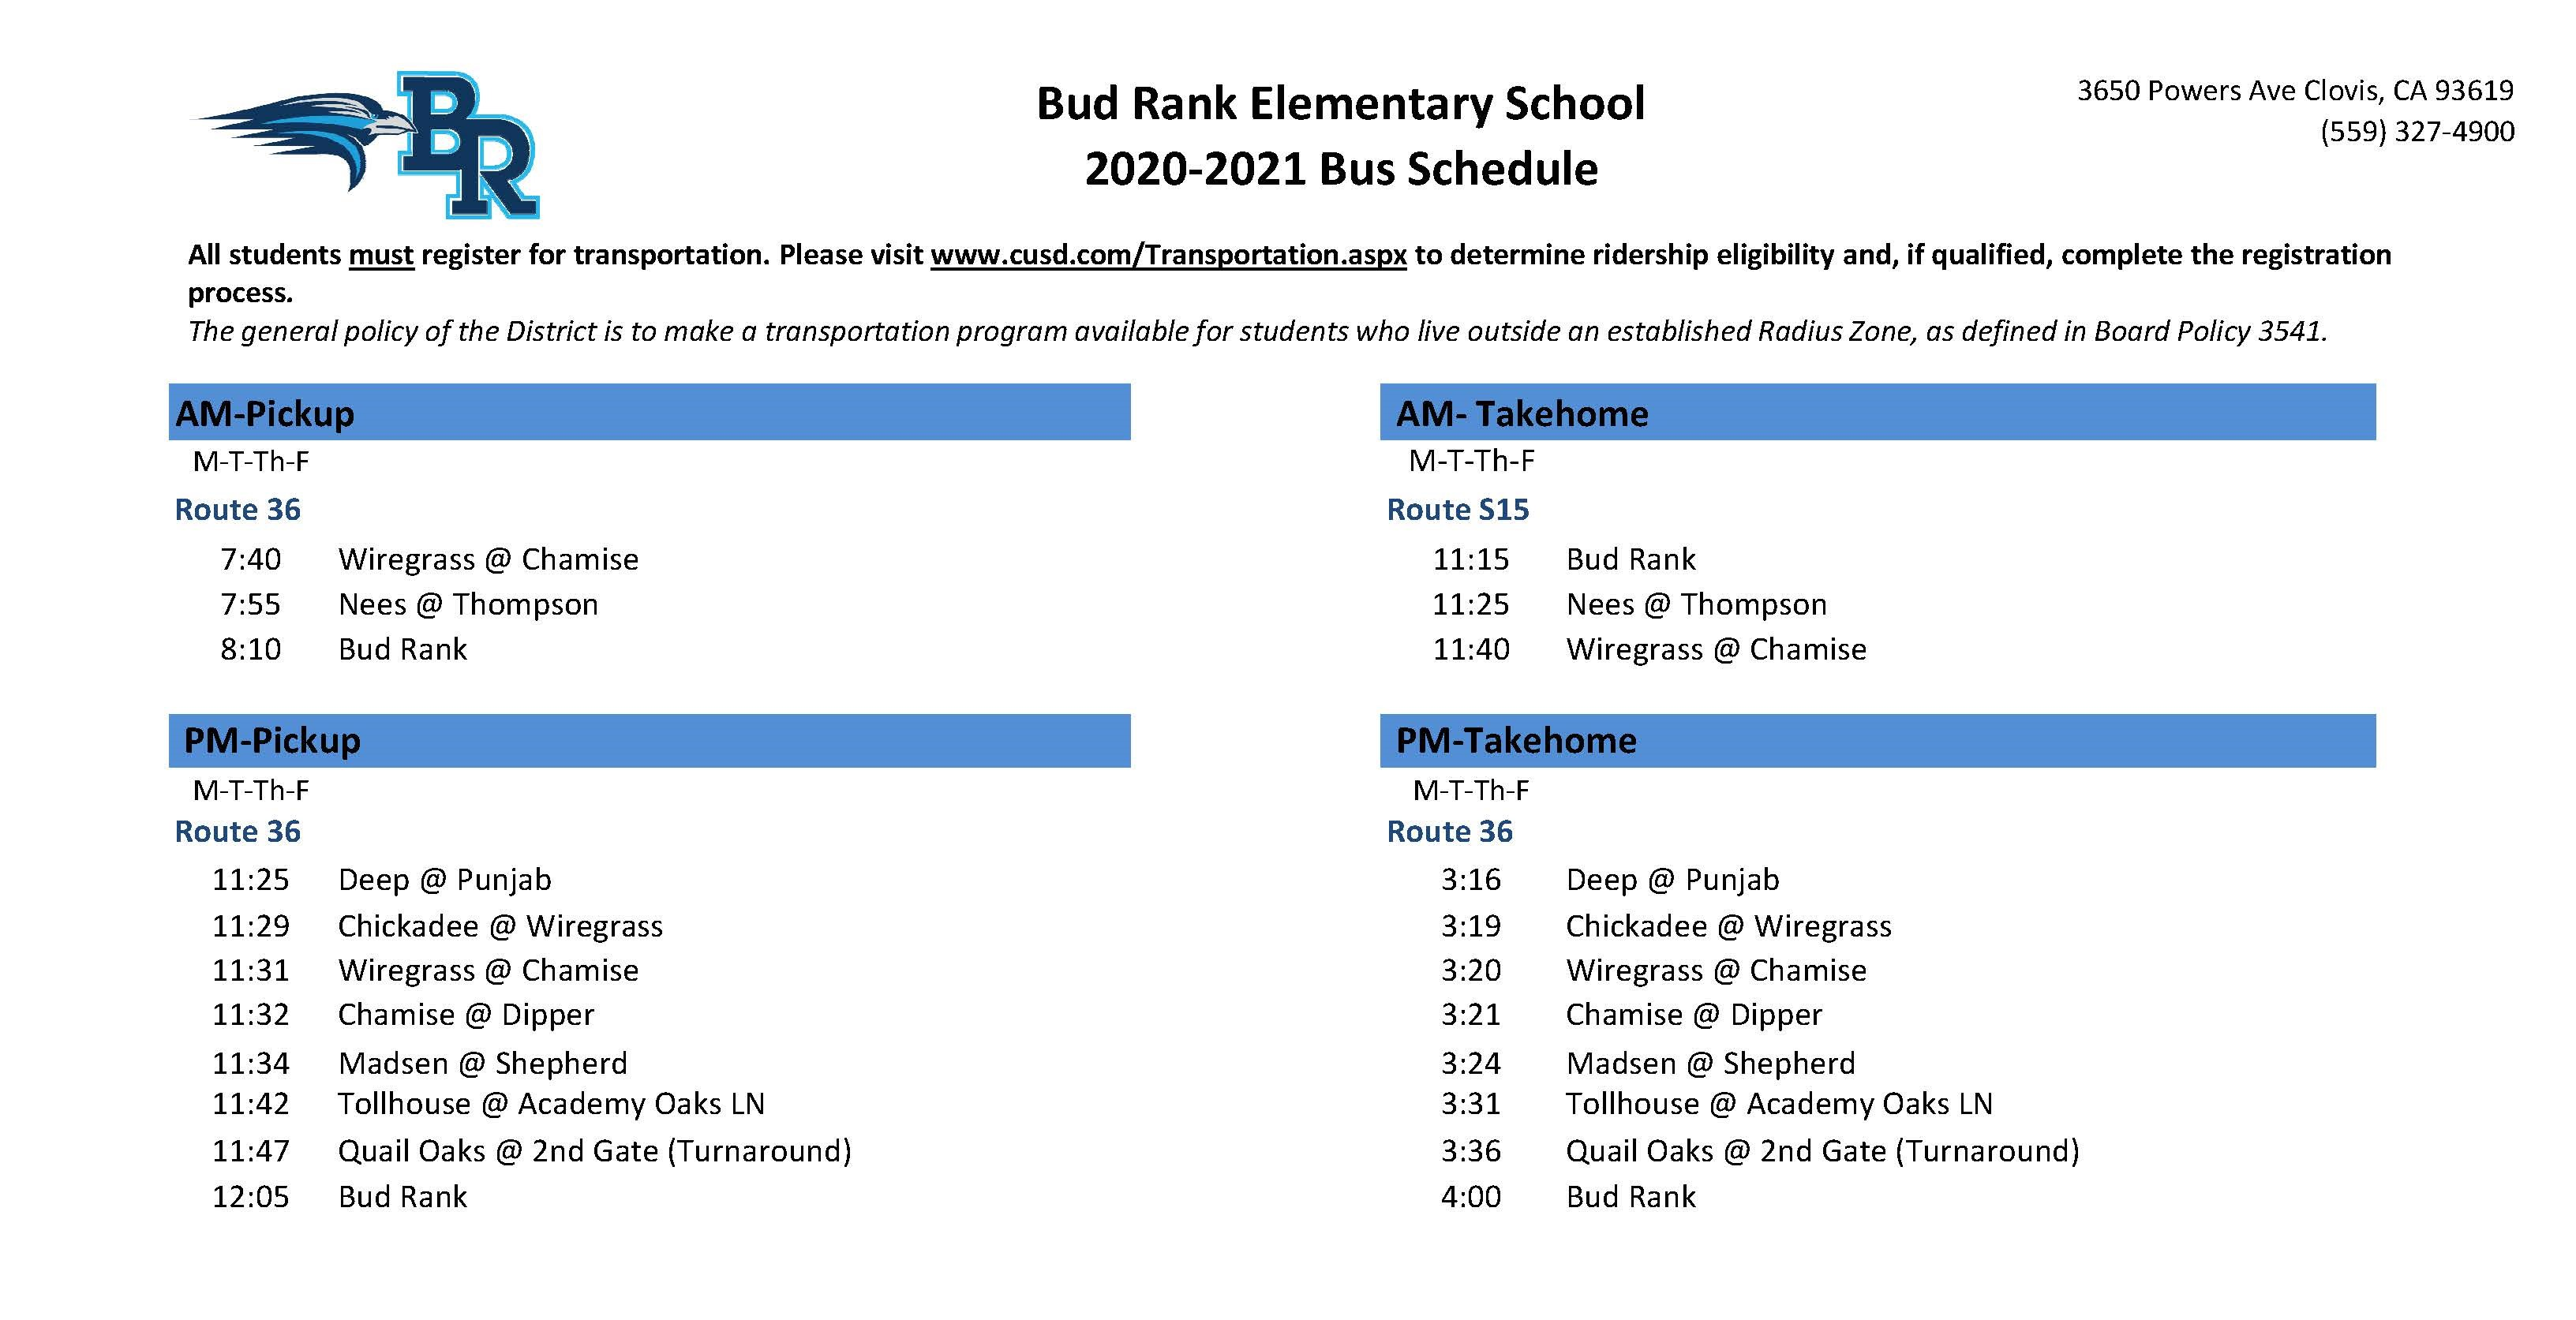 Bud Rank Elementary Buss Schedule-see above link for details